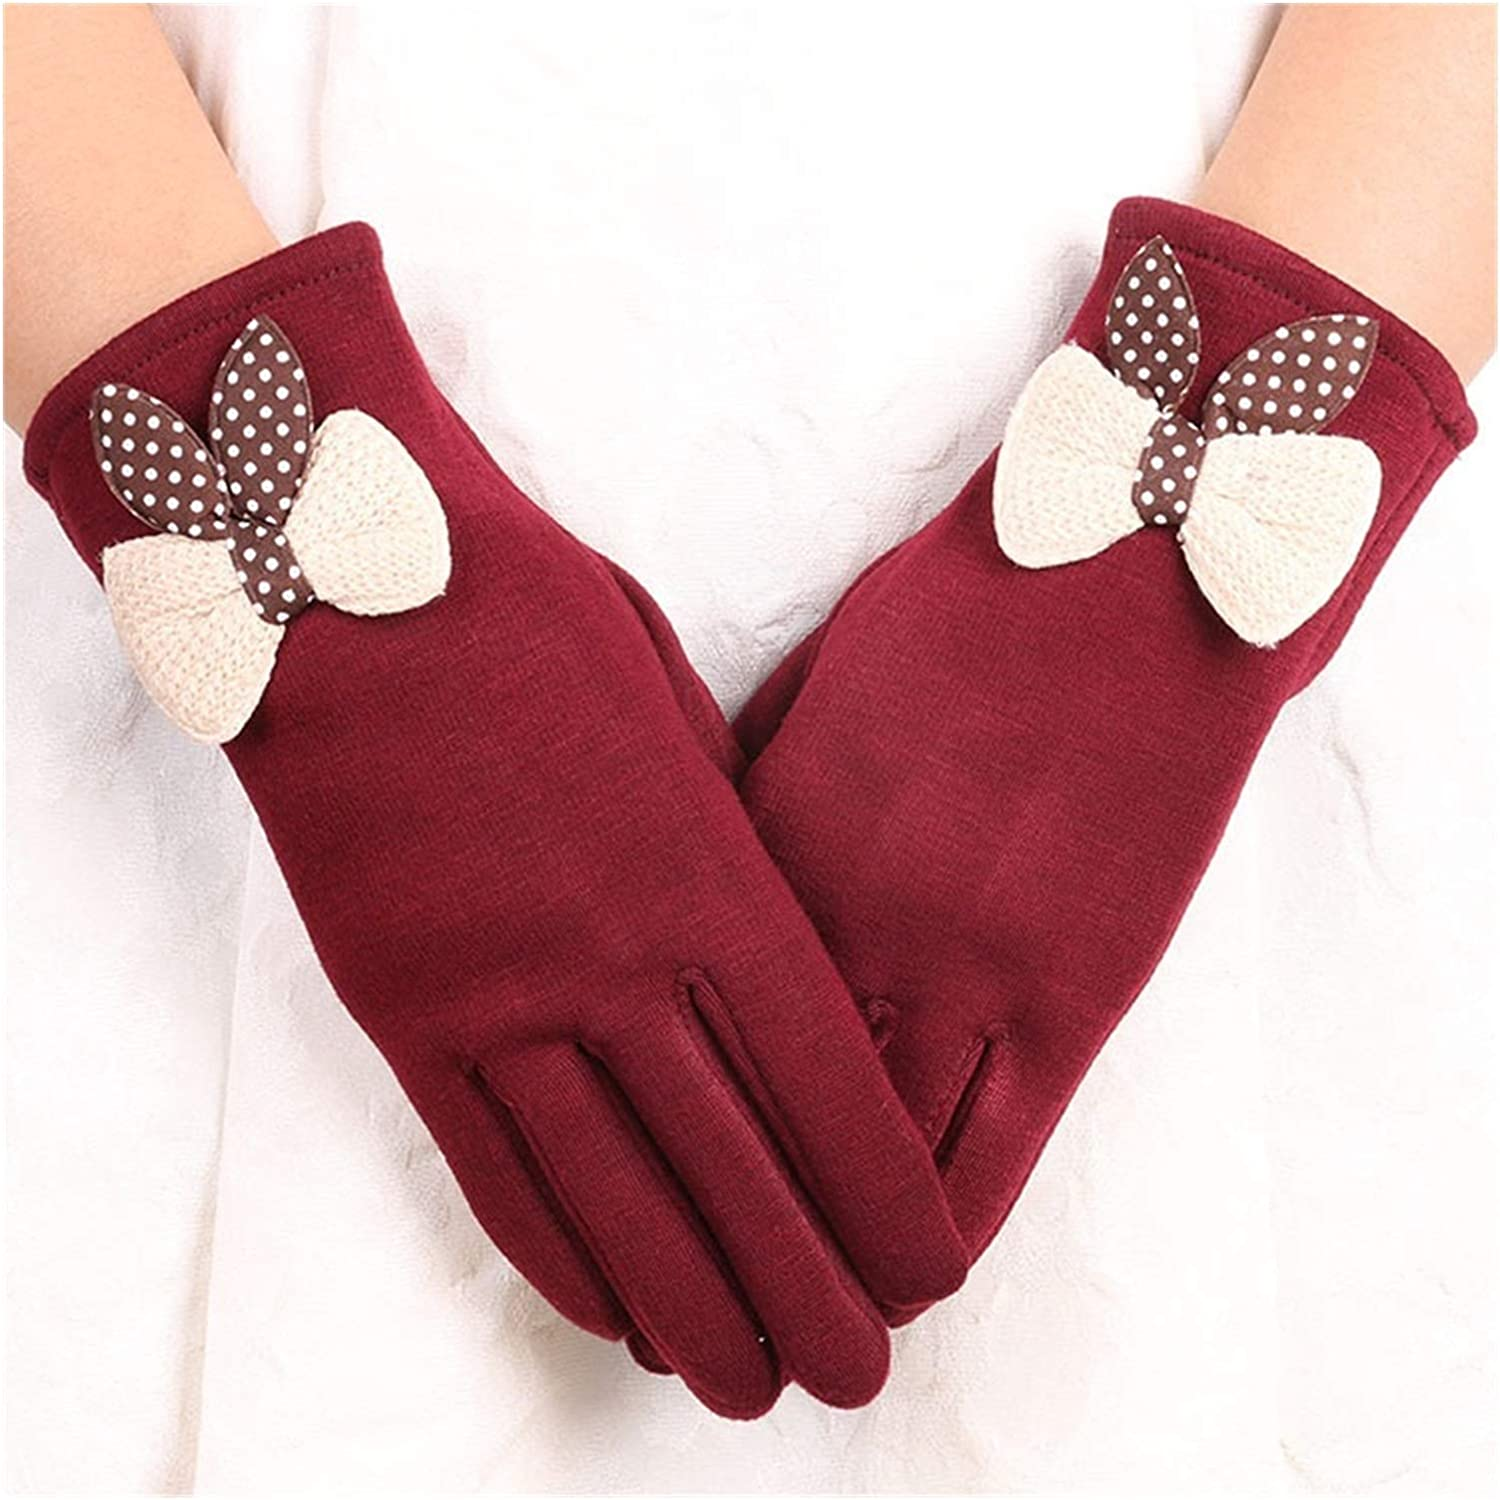 JBIVWW Ladies Winter Gloves Without Down Cashmere Touch Screen Plus Cashmere Women's Cashmere Warm Riding Gloves in Winter (Color : A142 2)